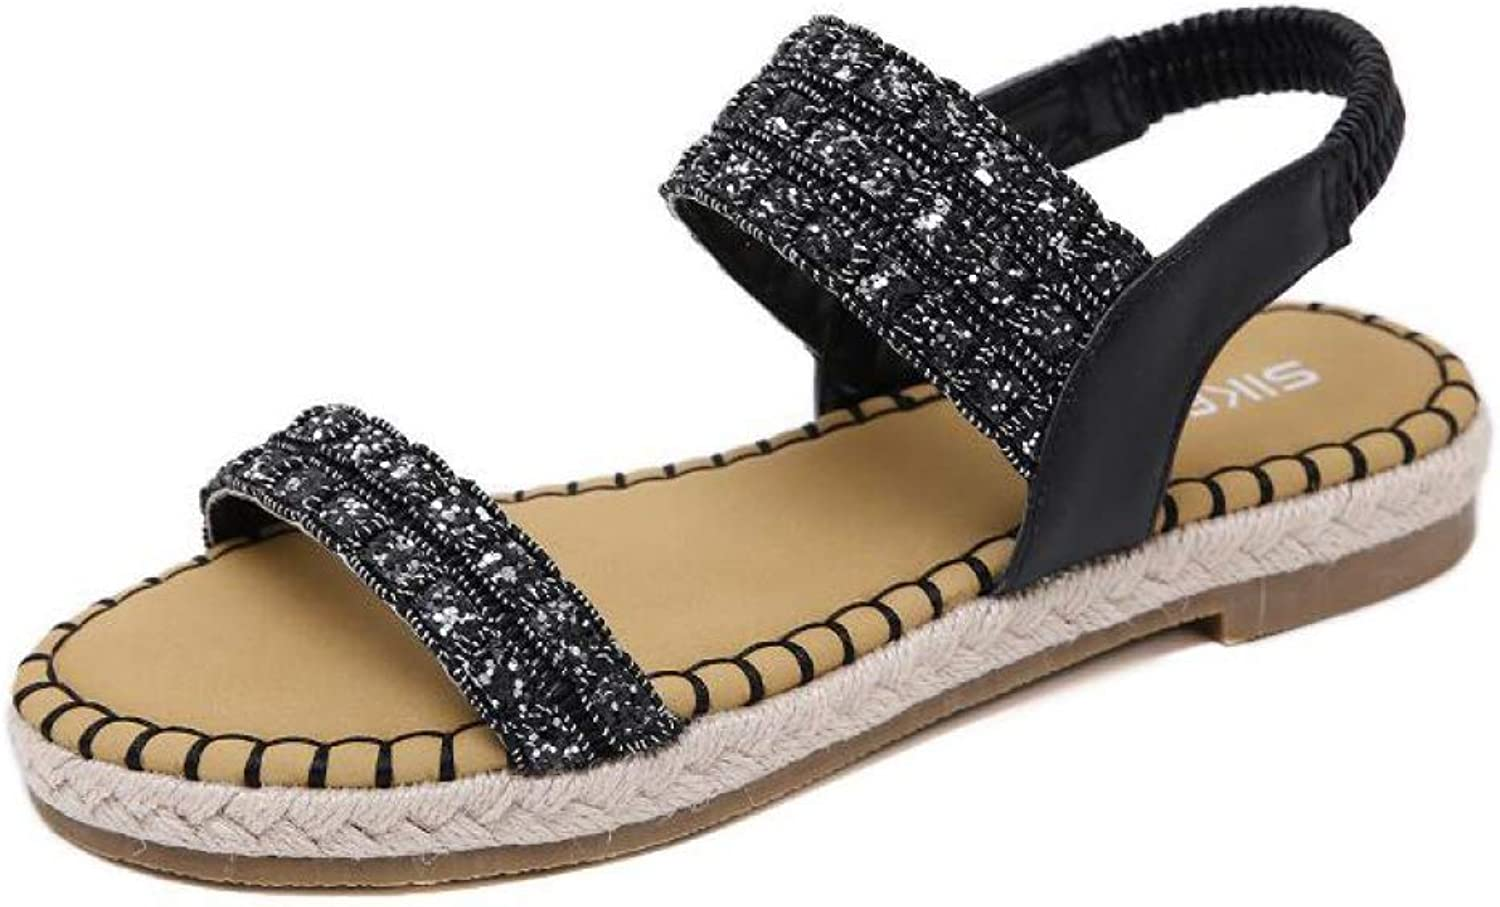 T-JULY Women's Sandals Sequined Hemp Rope Flat shoes Fashion Thick Rubber Sole Open Toes Summer Woman Slingback shoes